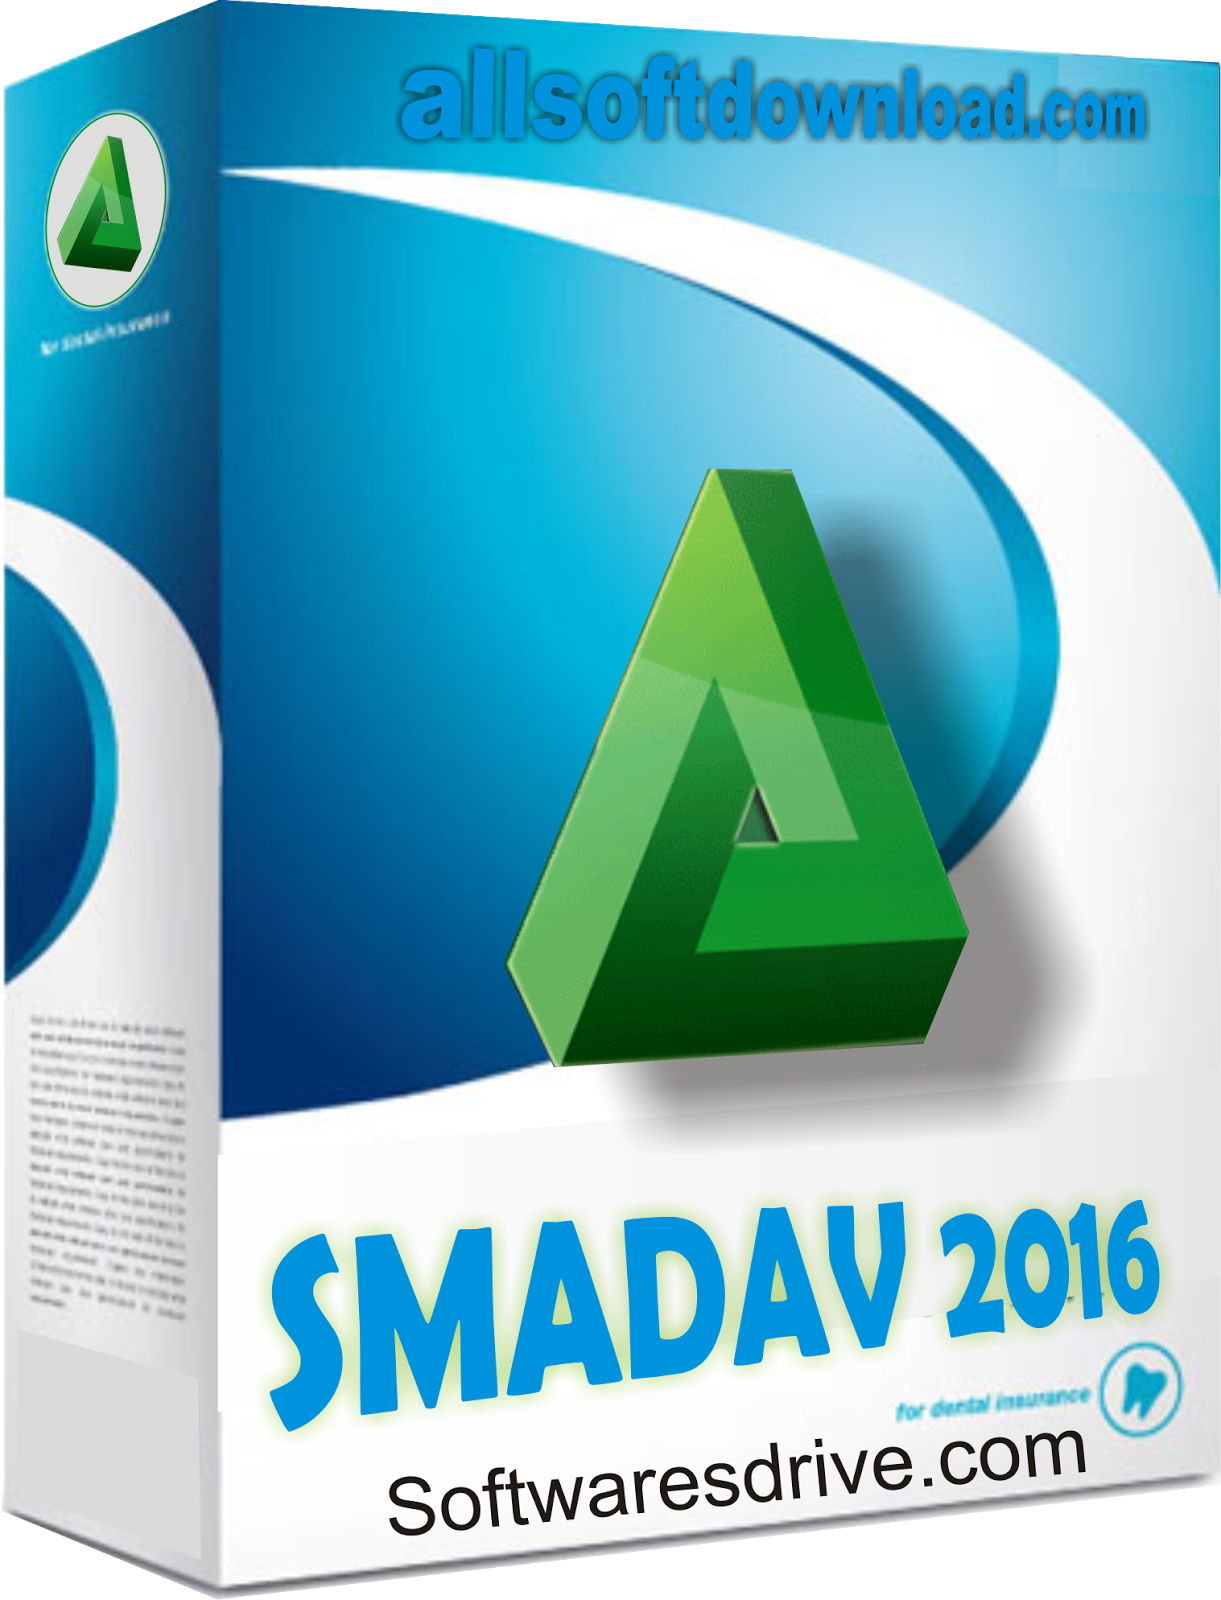 Smadav 2016 free download all soft download Online antivirus download